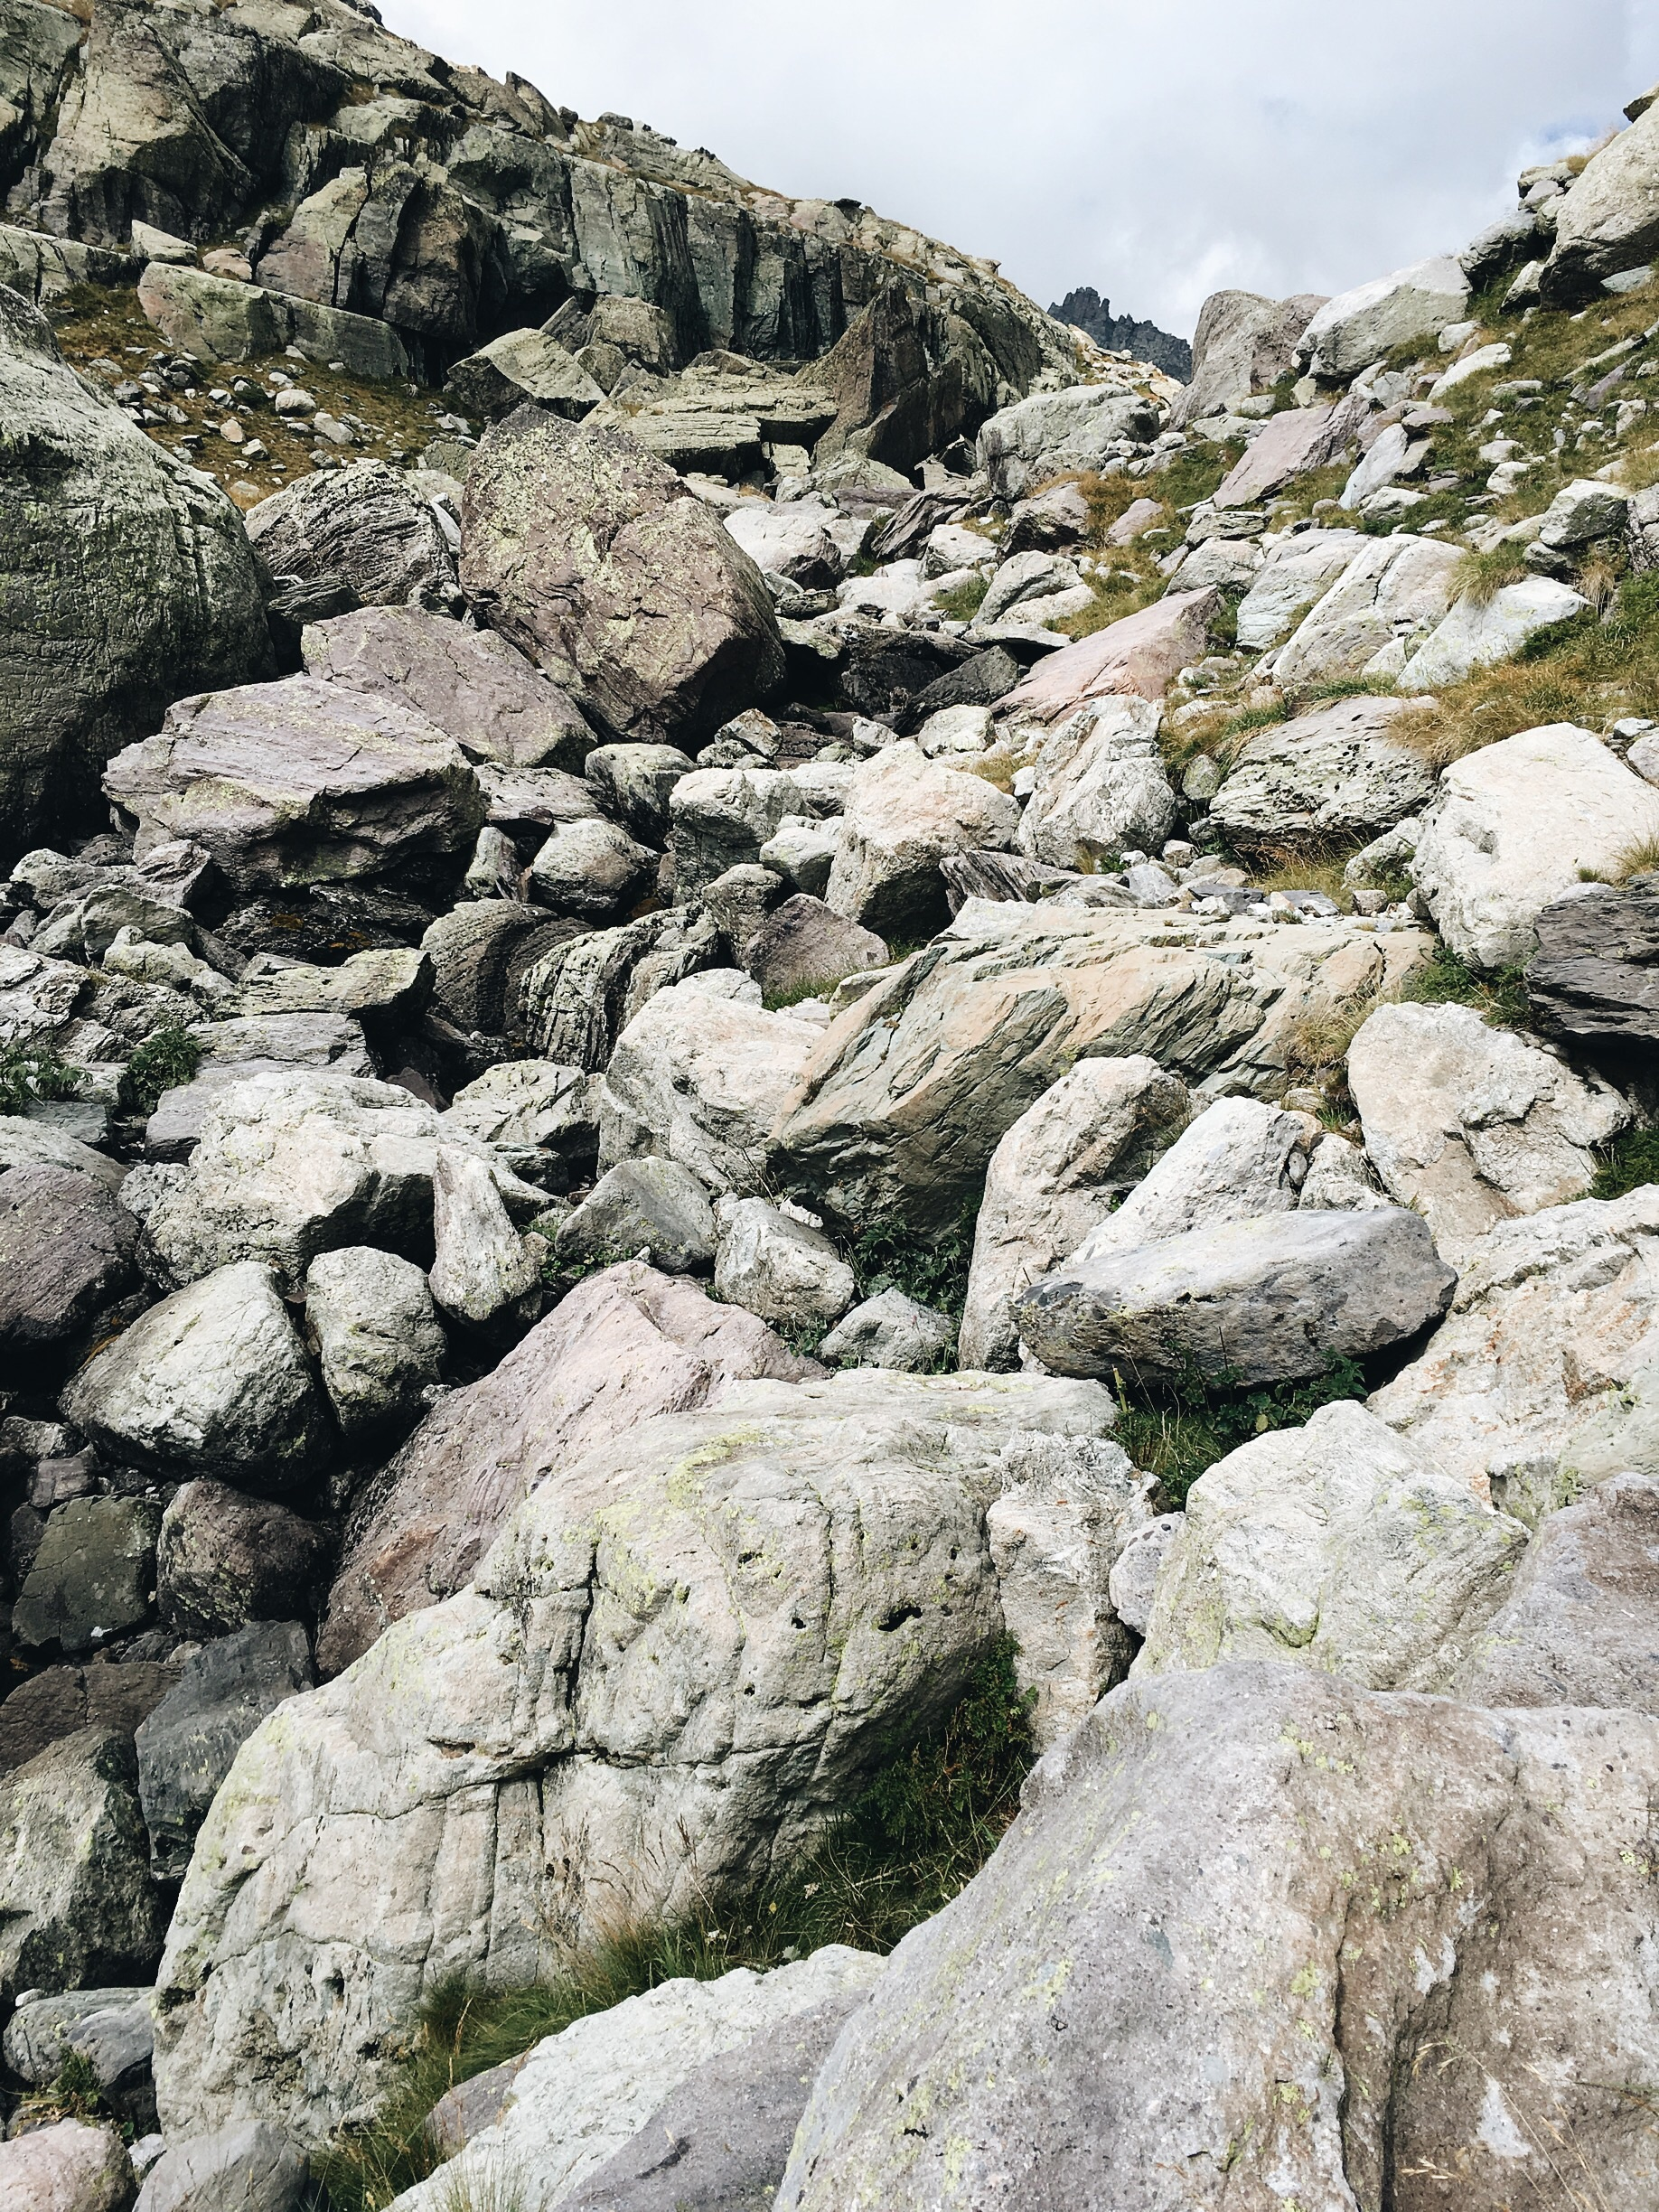 Another huge boulder field to cross.